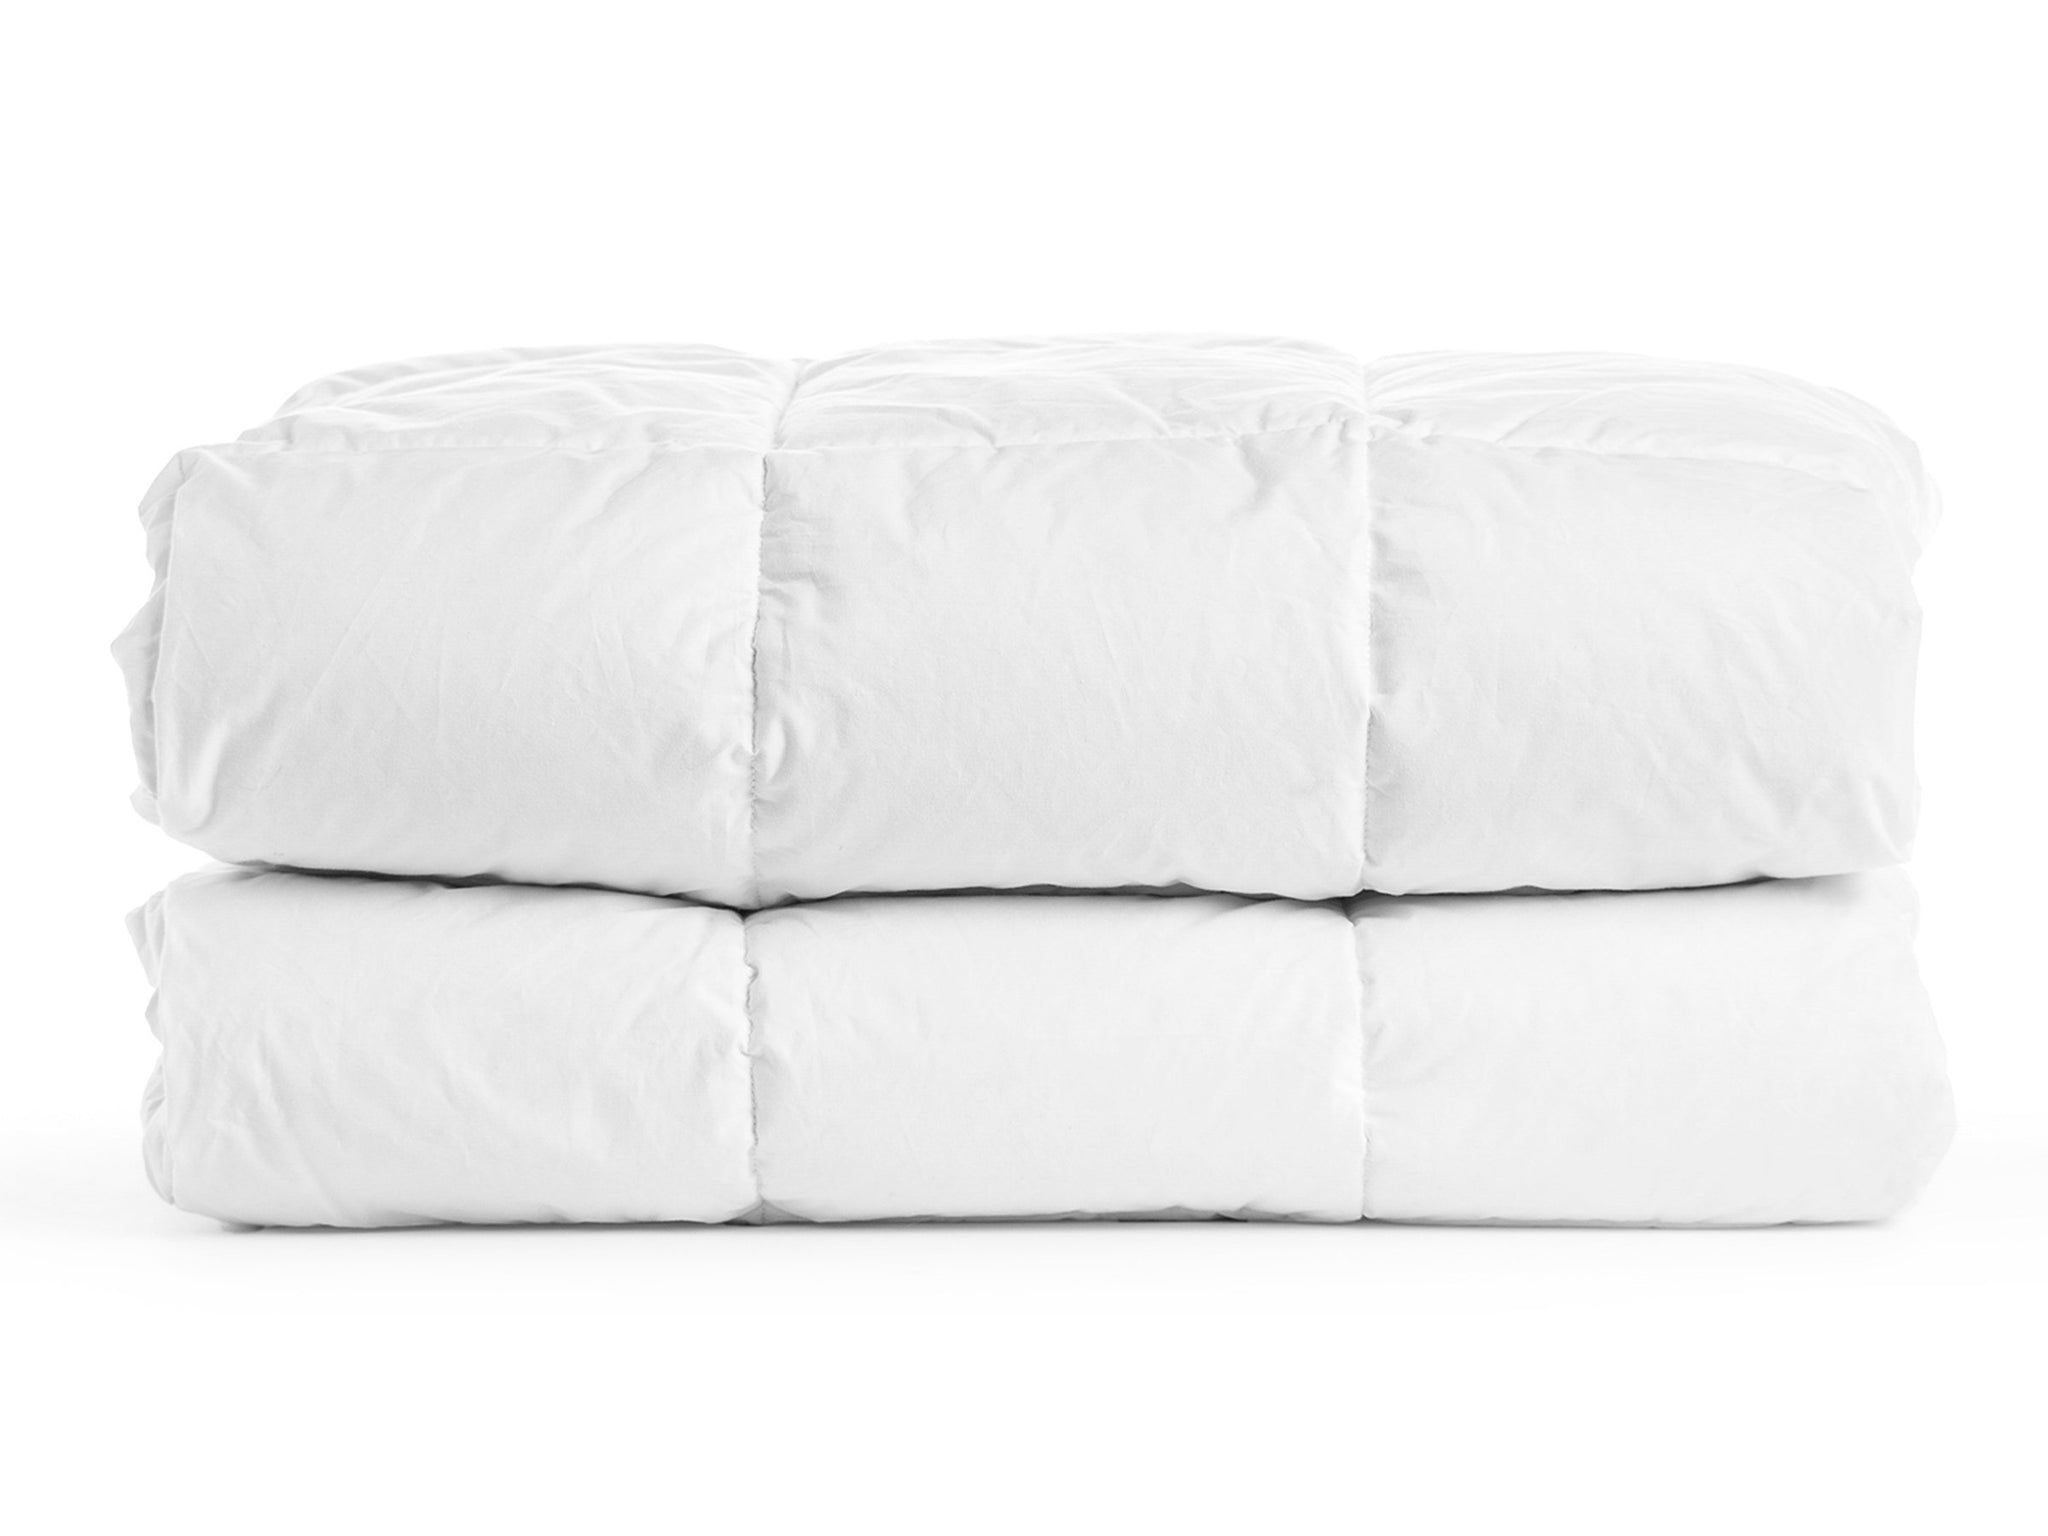 DOWN ALTERNATIVE MATTRESS PAD FULL/QUEEN